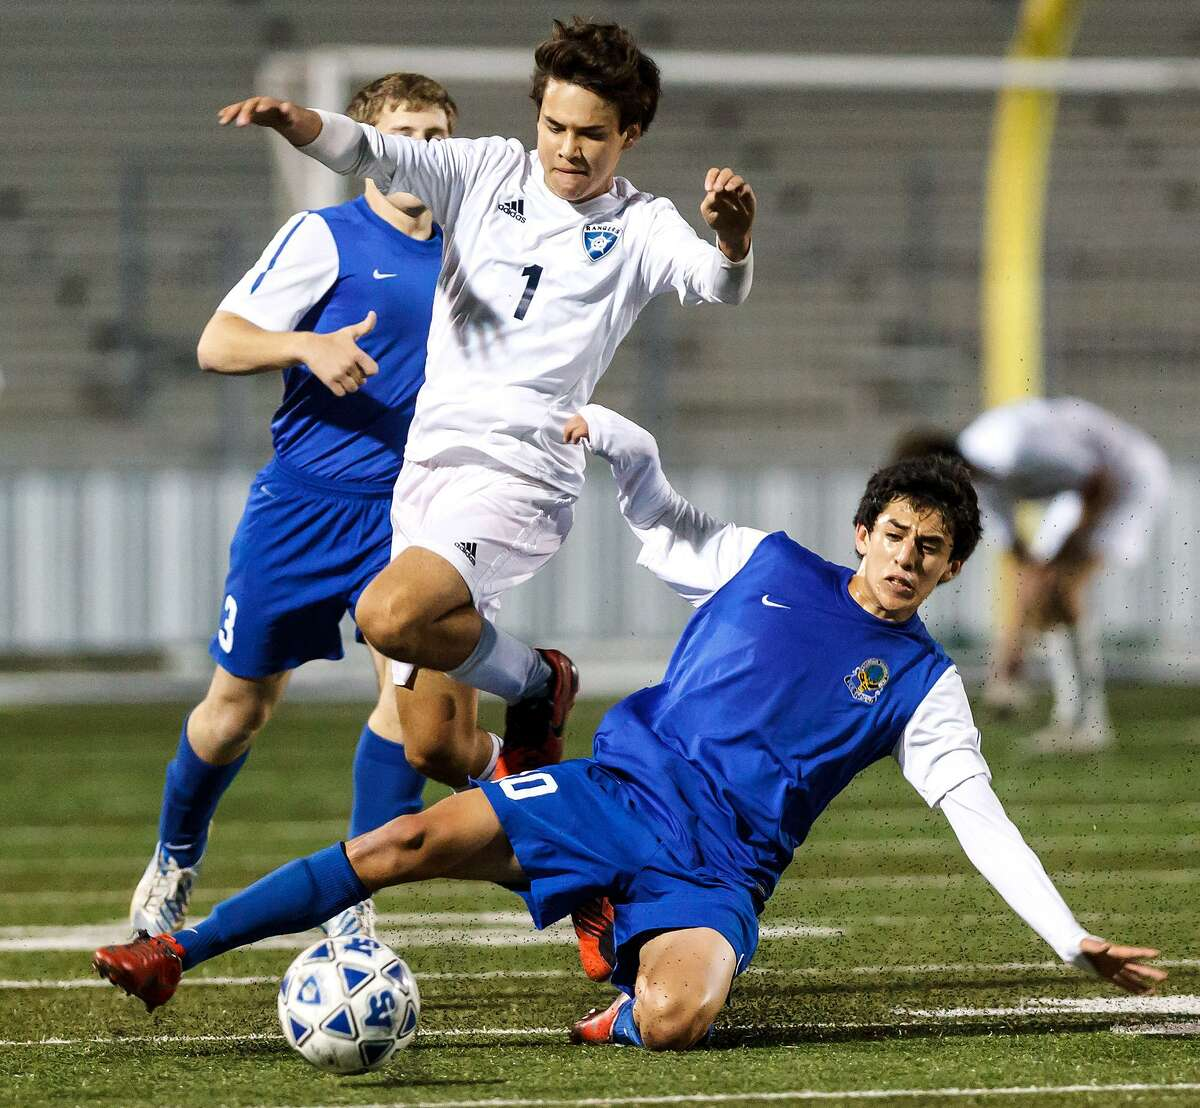 MacArthur's Nico Loera (right) slides in front of Smithson Valley's Diego Martinez to try to steal the ball as Elliot Clark looks on during the second half of their 5A first round playoff game at Smithson Valley on Thursday, March 28, 2013. MacArthur beat the Rangers 1-0. Photo by Marvin Pfeiffer / Prime Time Newspapers